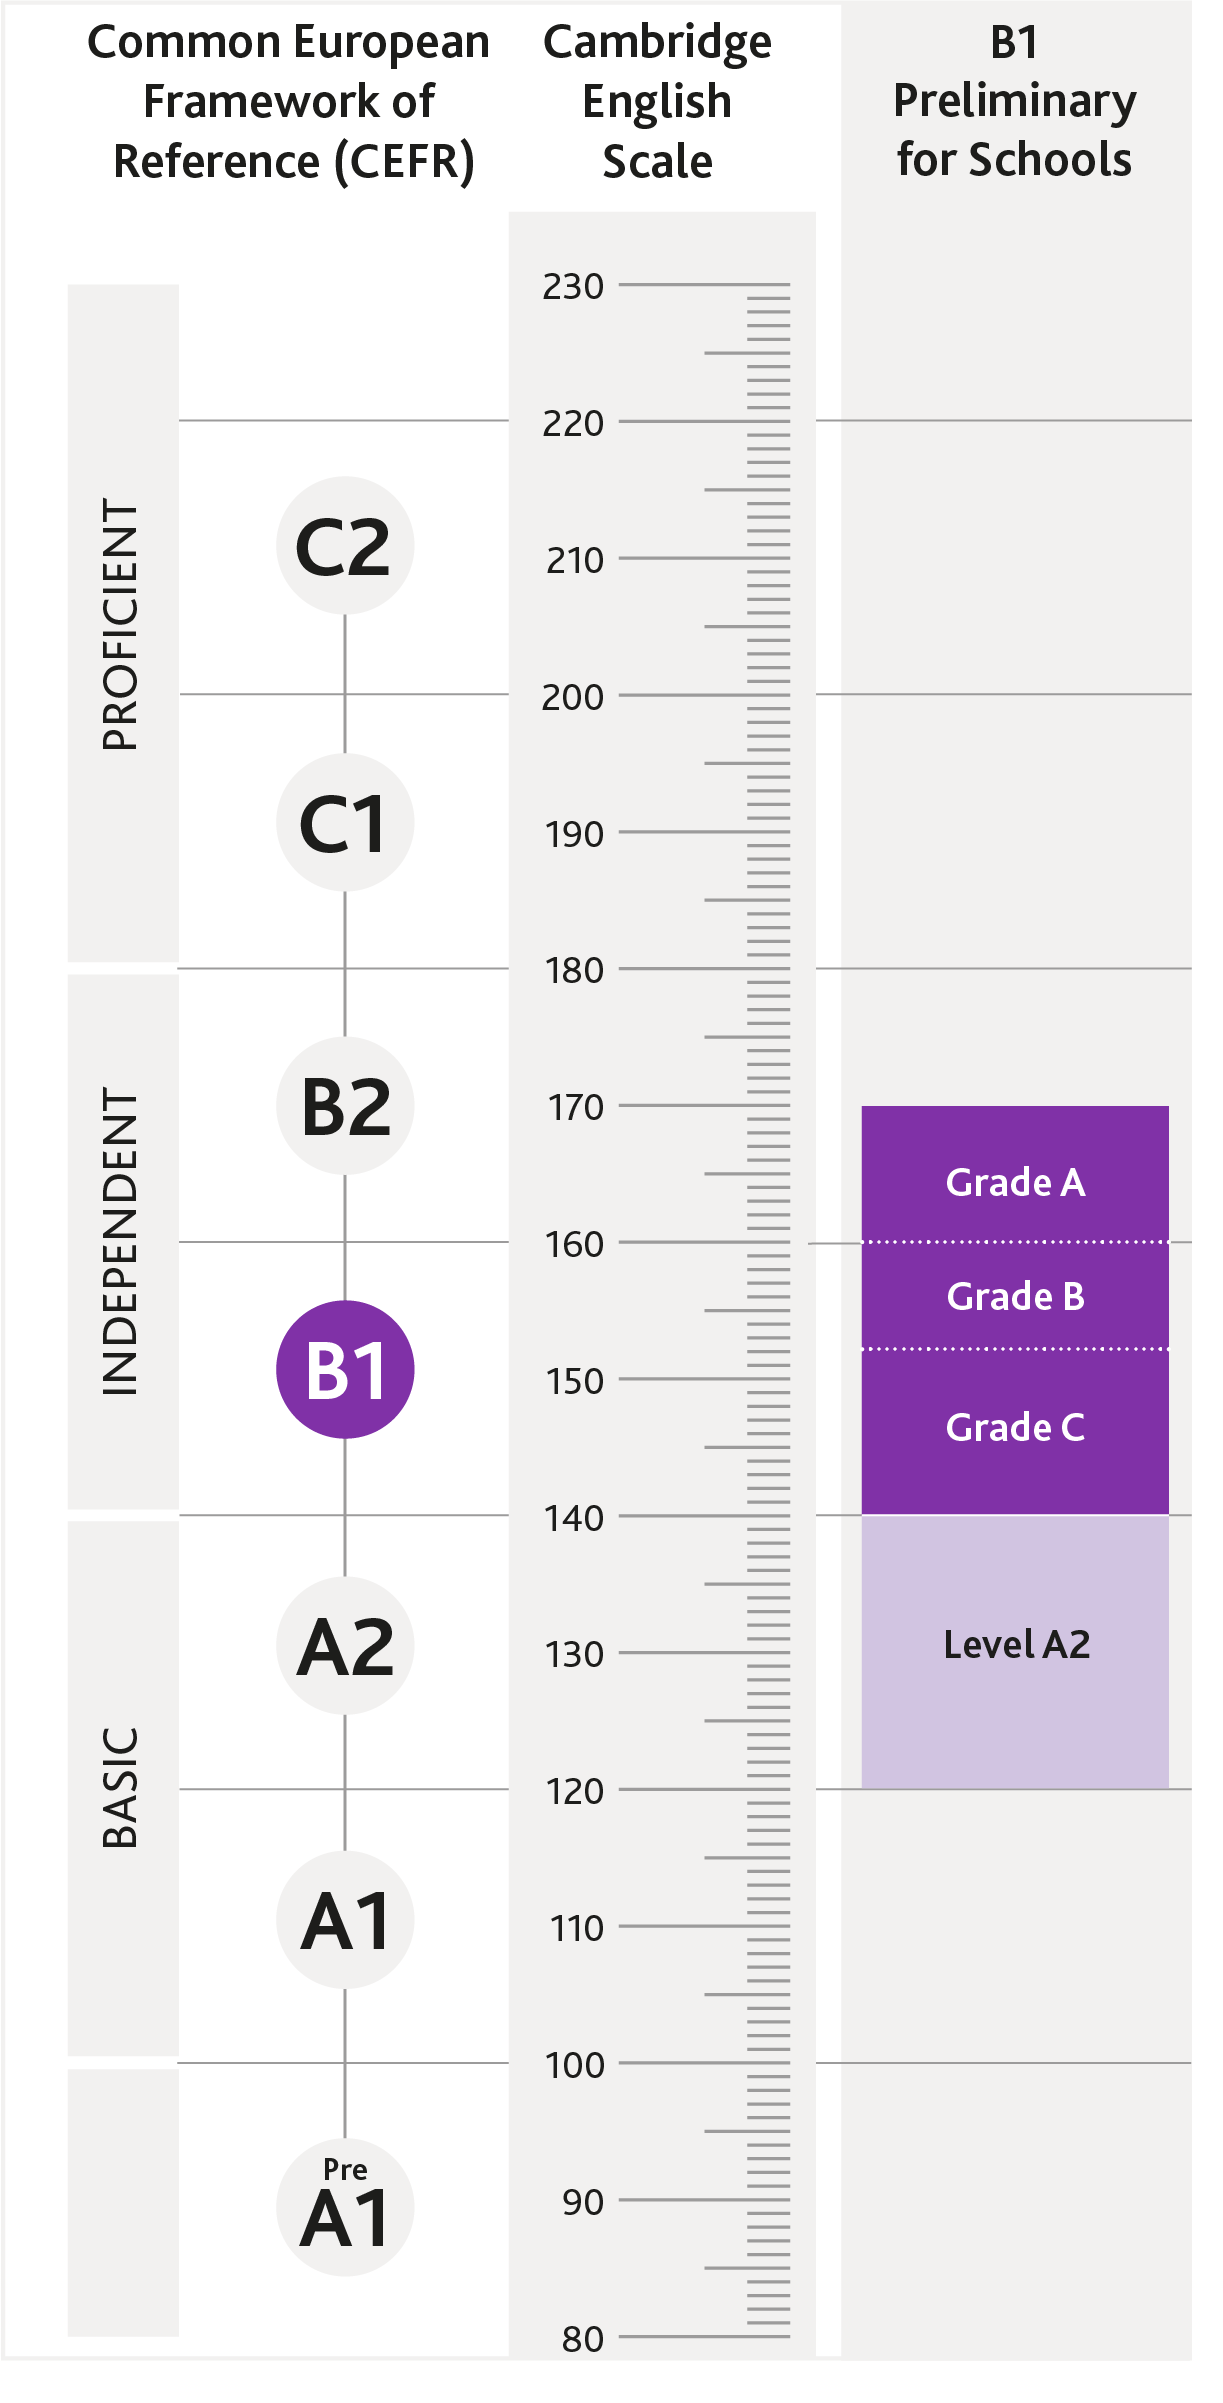 Diagram of where B1 Preliminary for Schools is aligned on the CEFR and the Cambridge English Scale